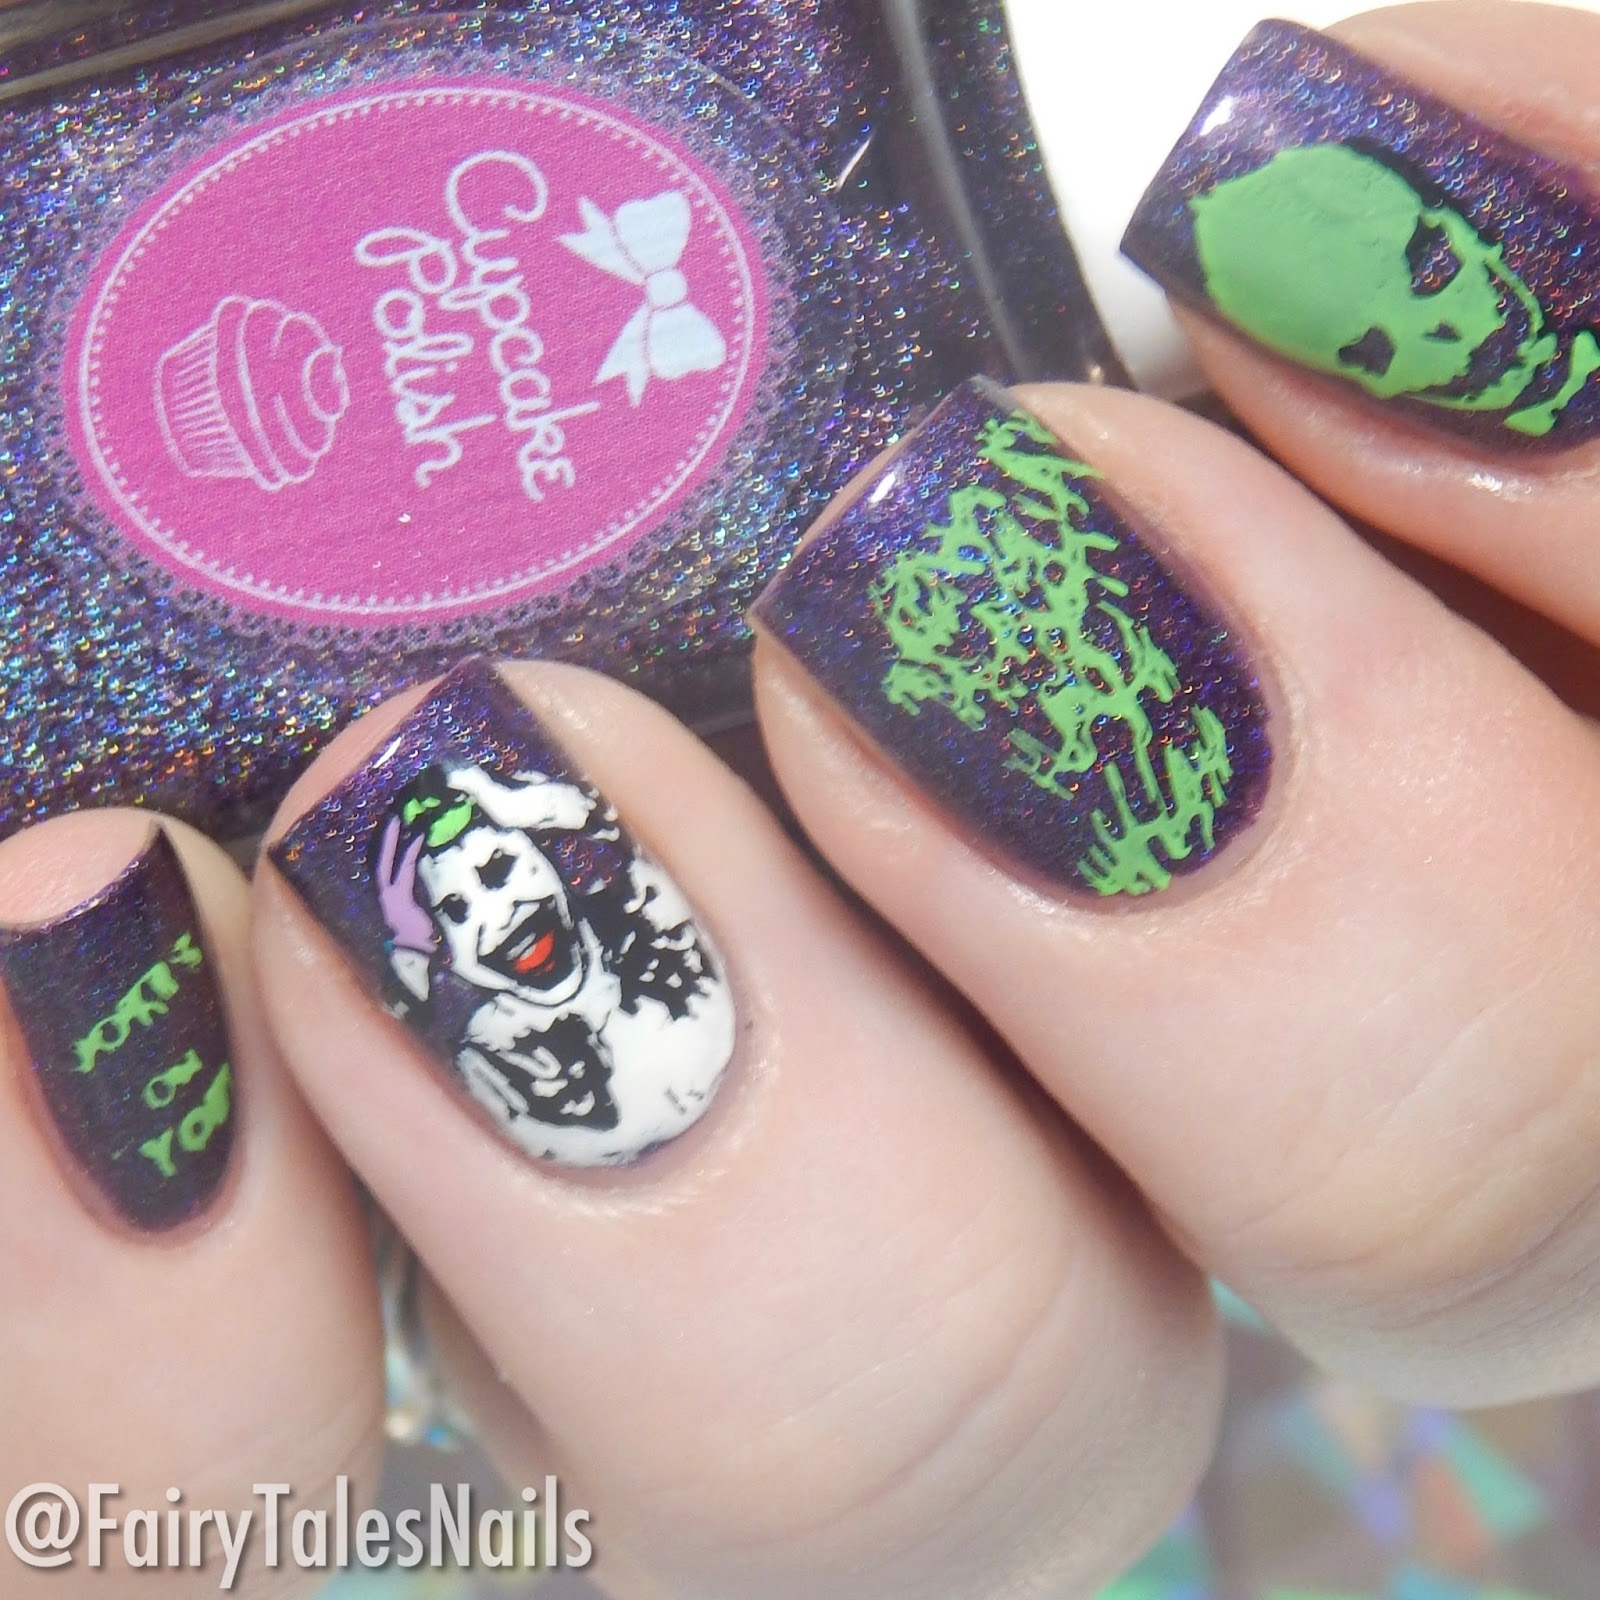 FairyTales Nails August 2017 Nail Art Round,Up